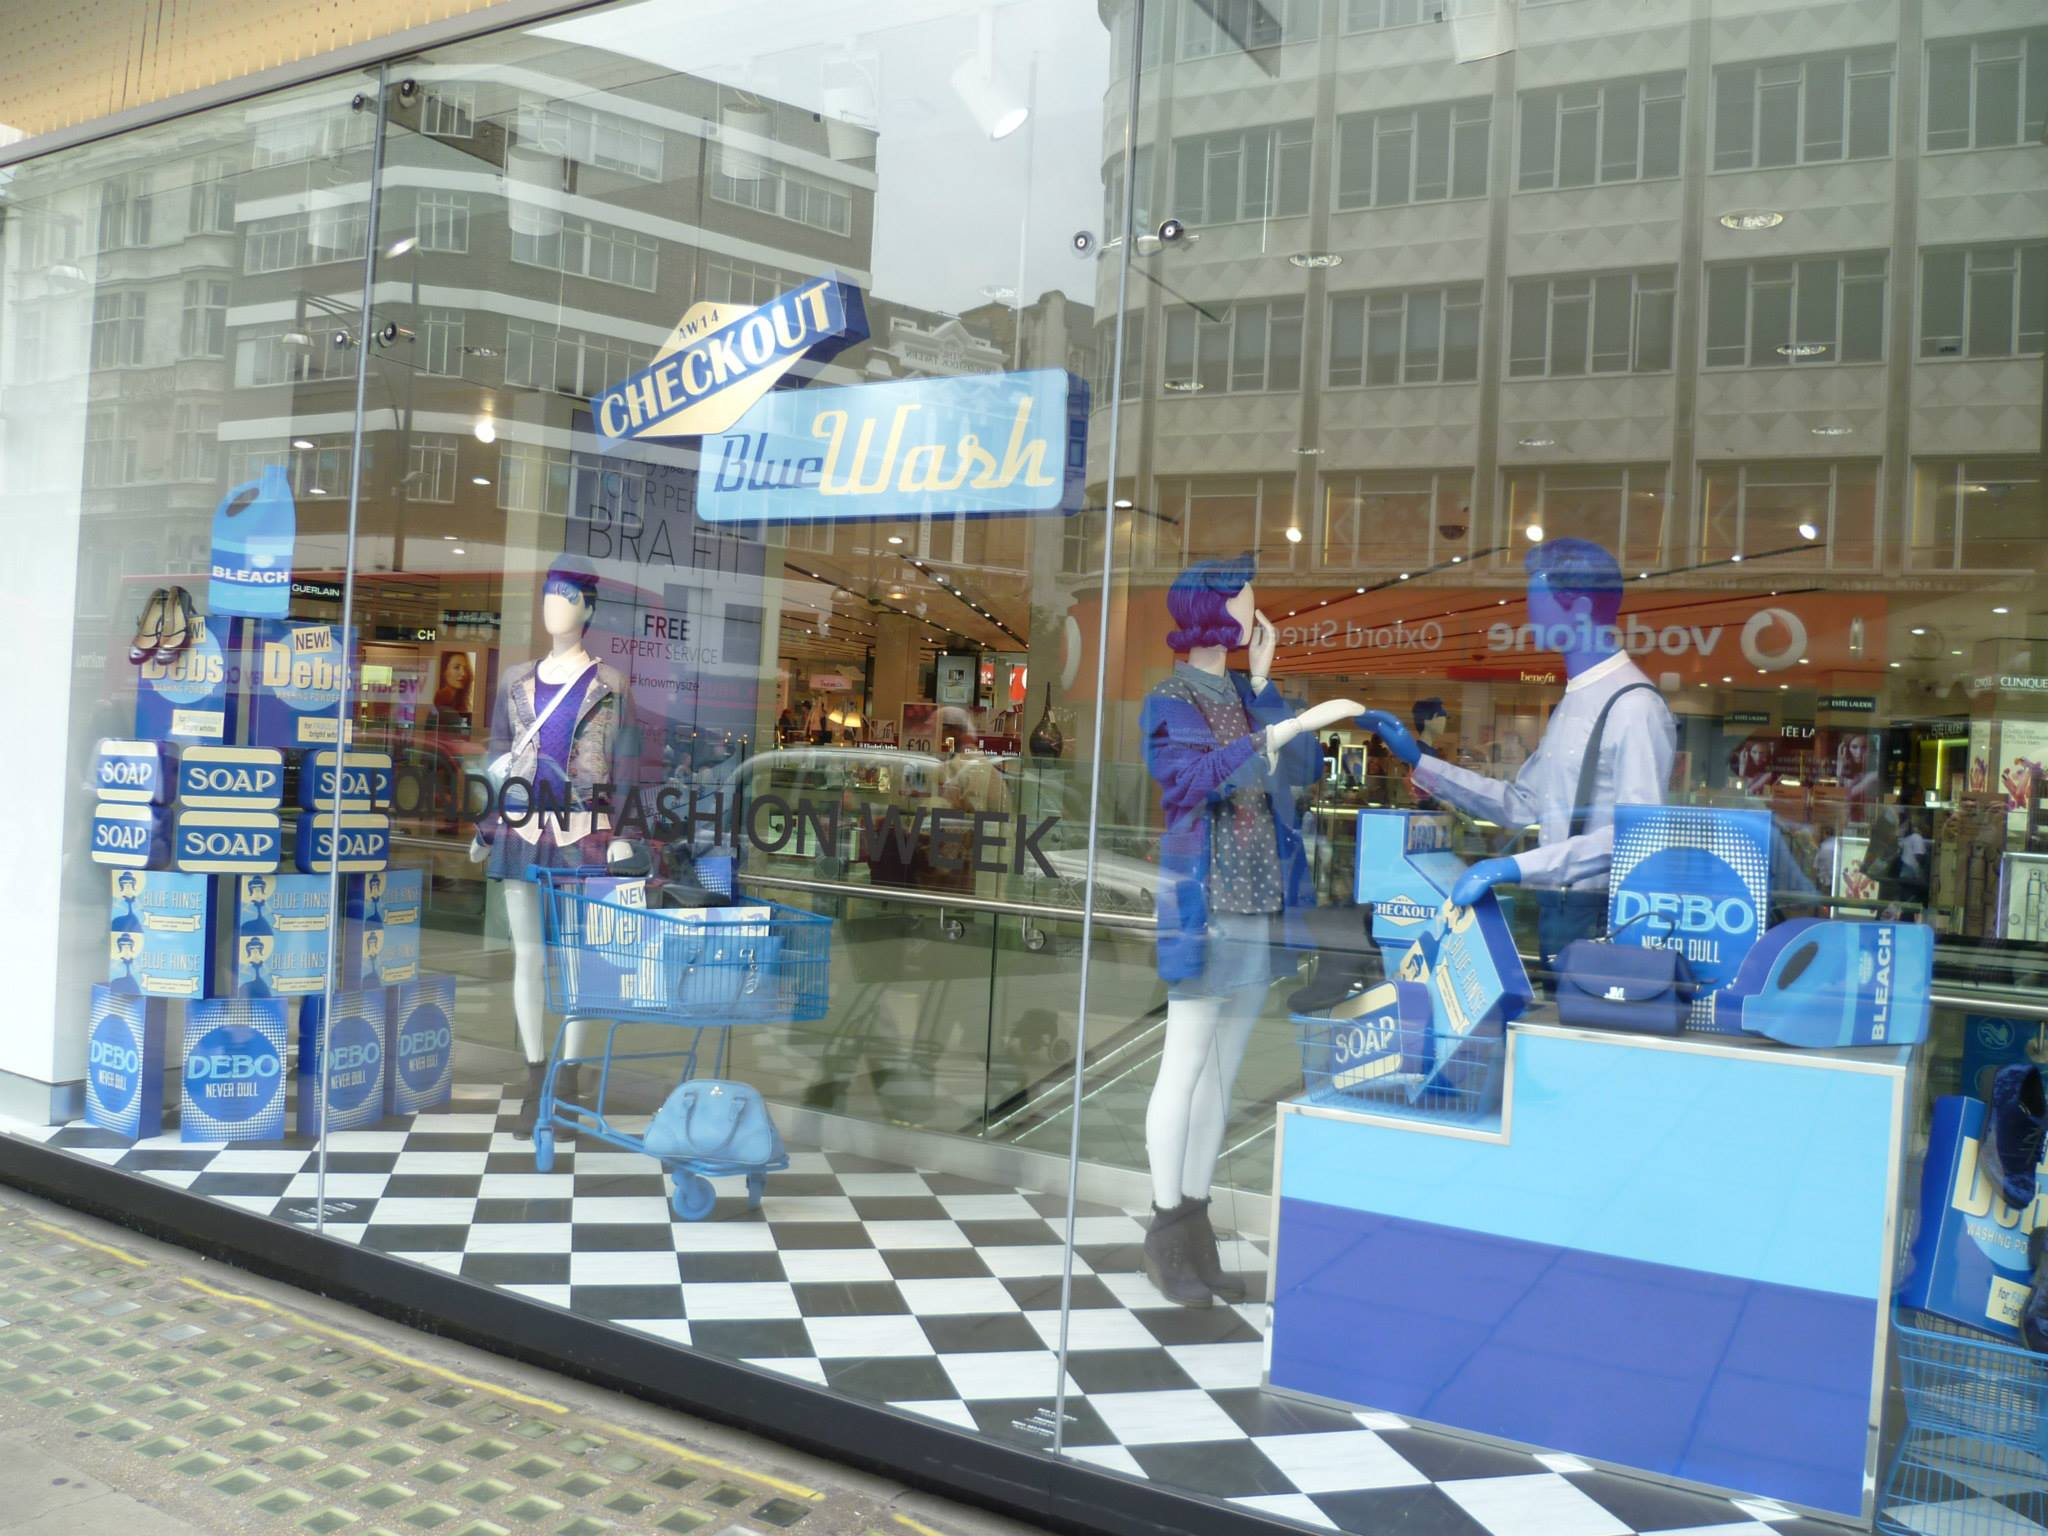 debenhams-fodd-fashion-windows-blue-wash